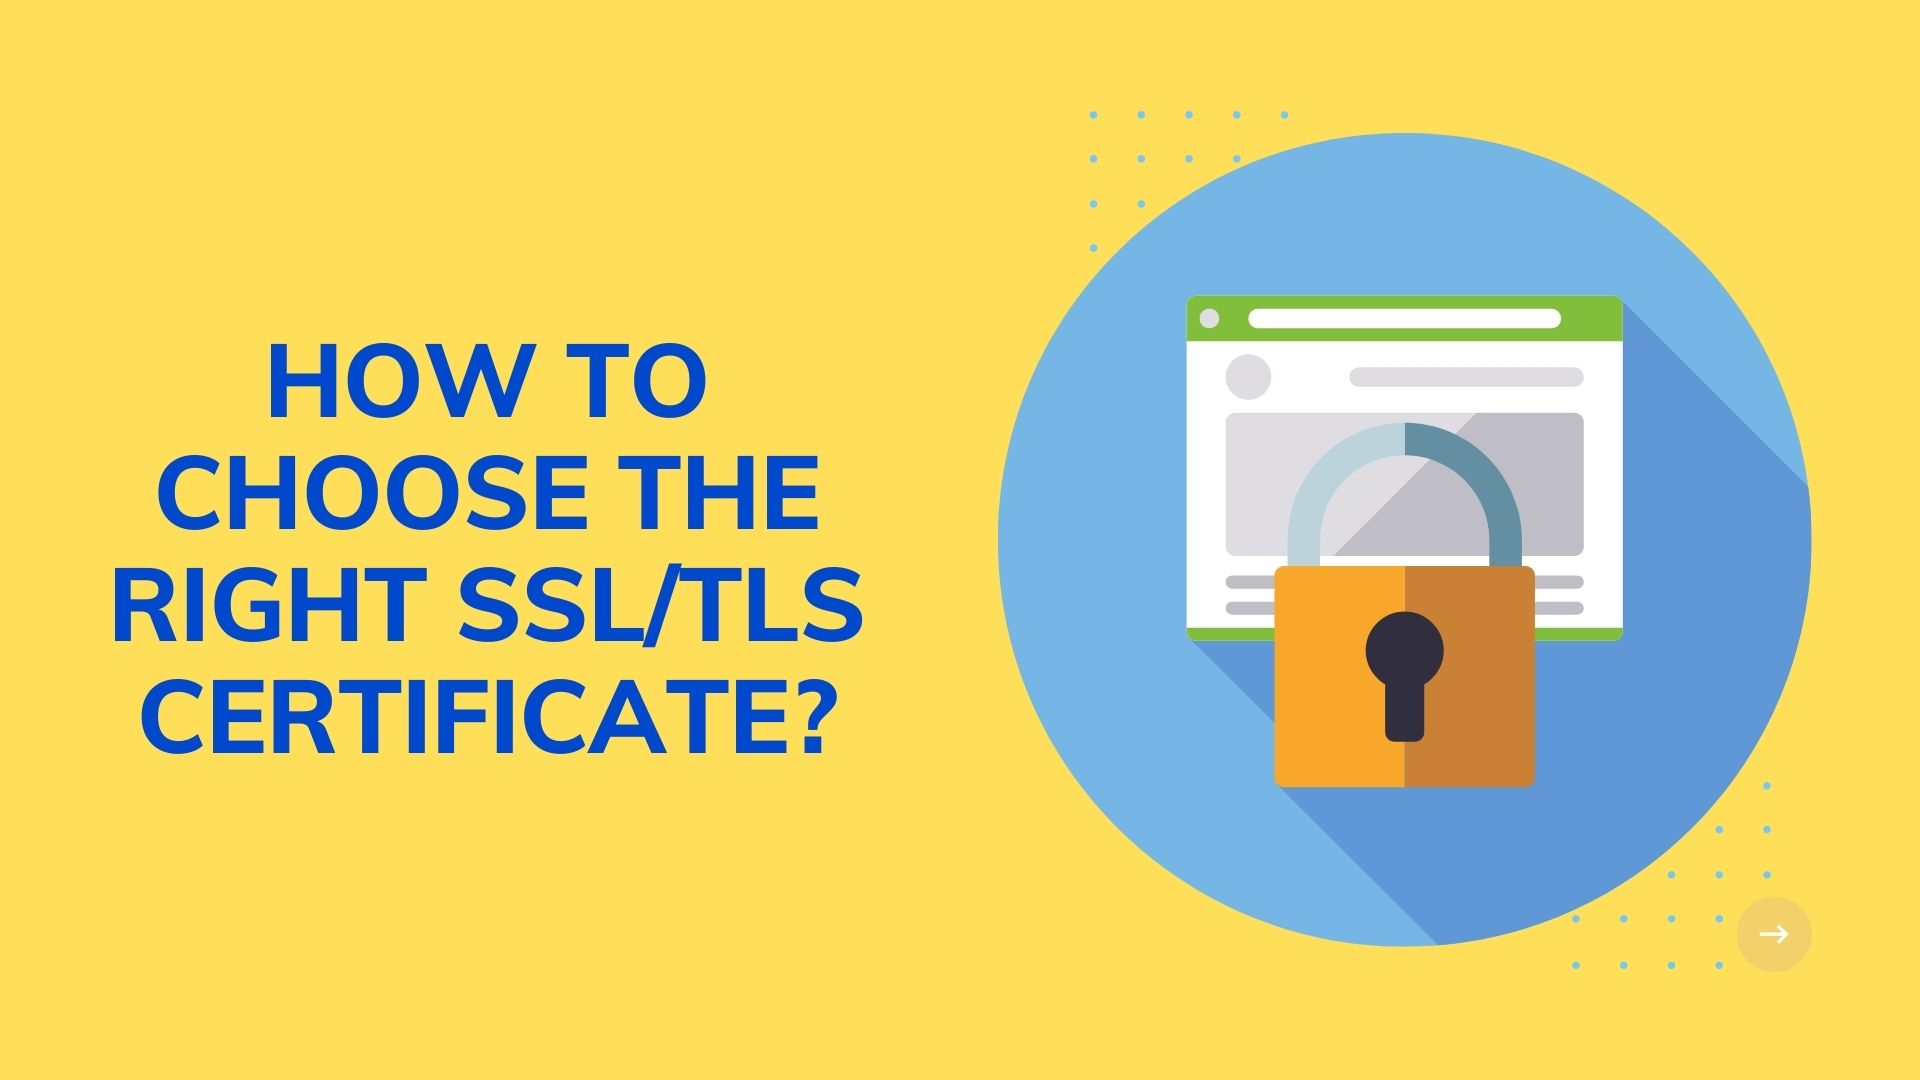 How to choose the right SSL/TLS certificate?